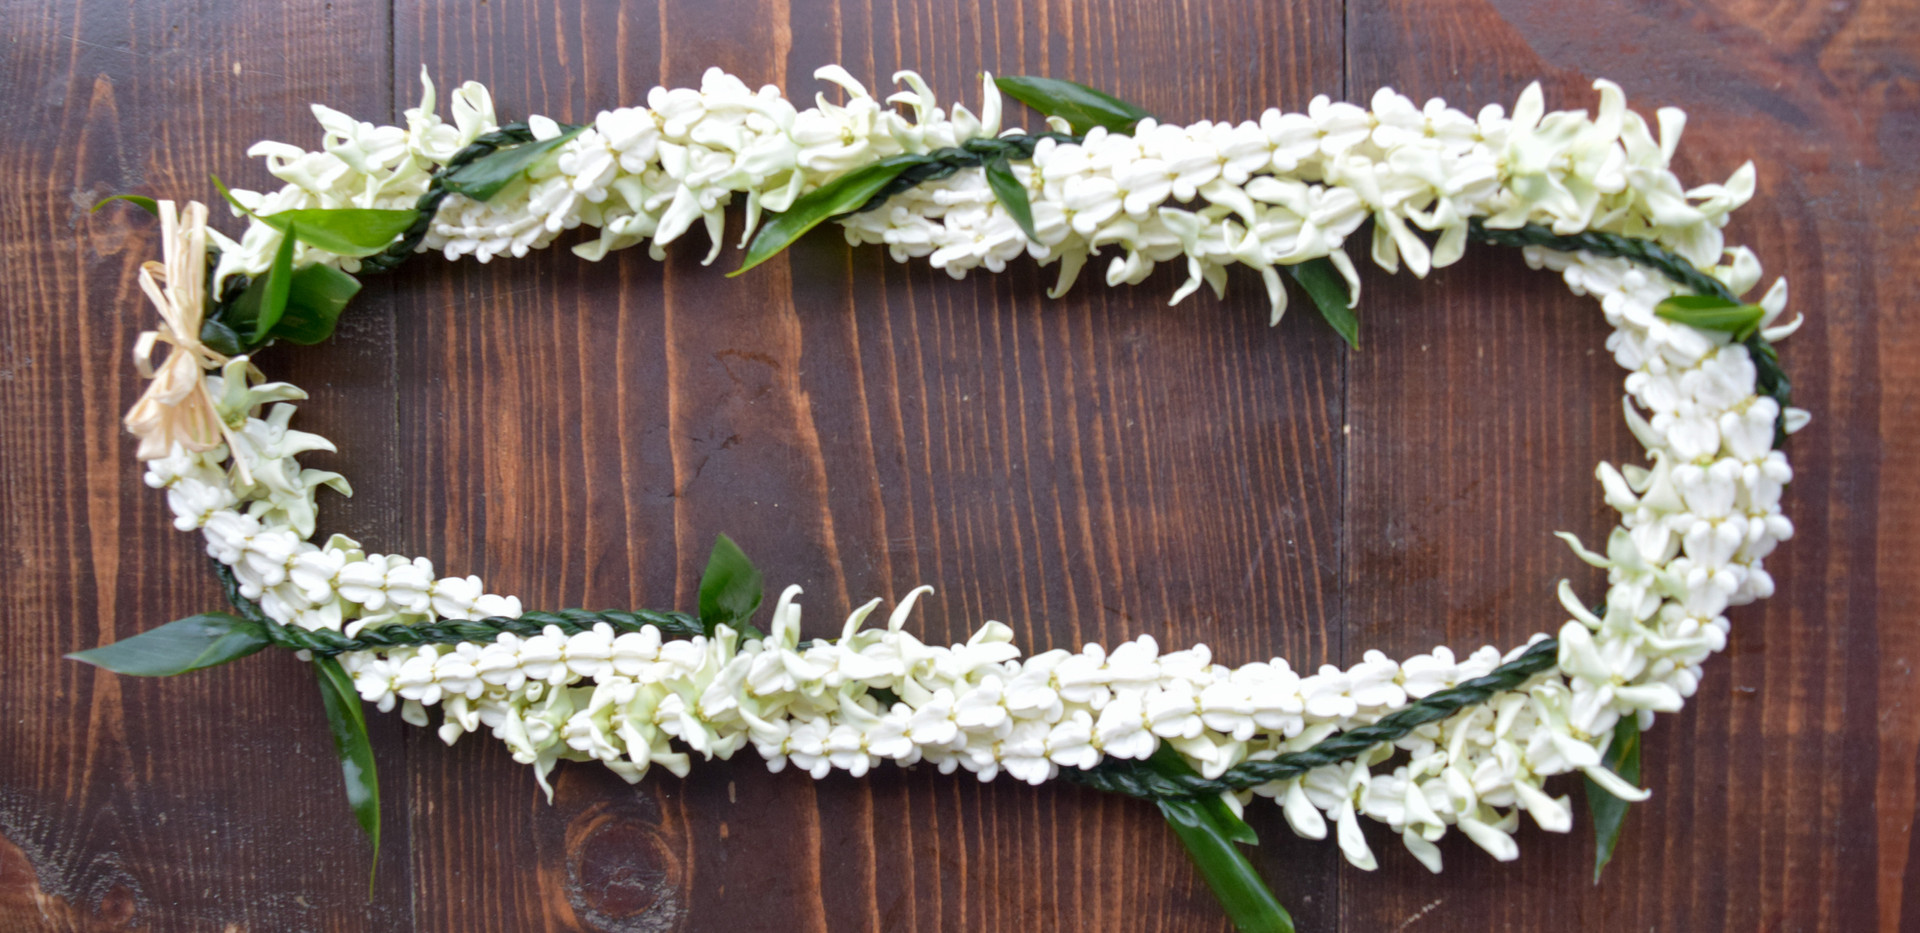 Quadruple strand ti leaf and crown flower twist lei